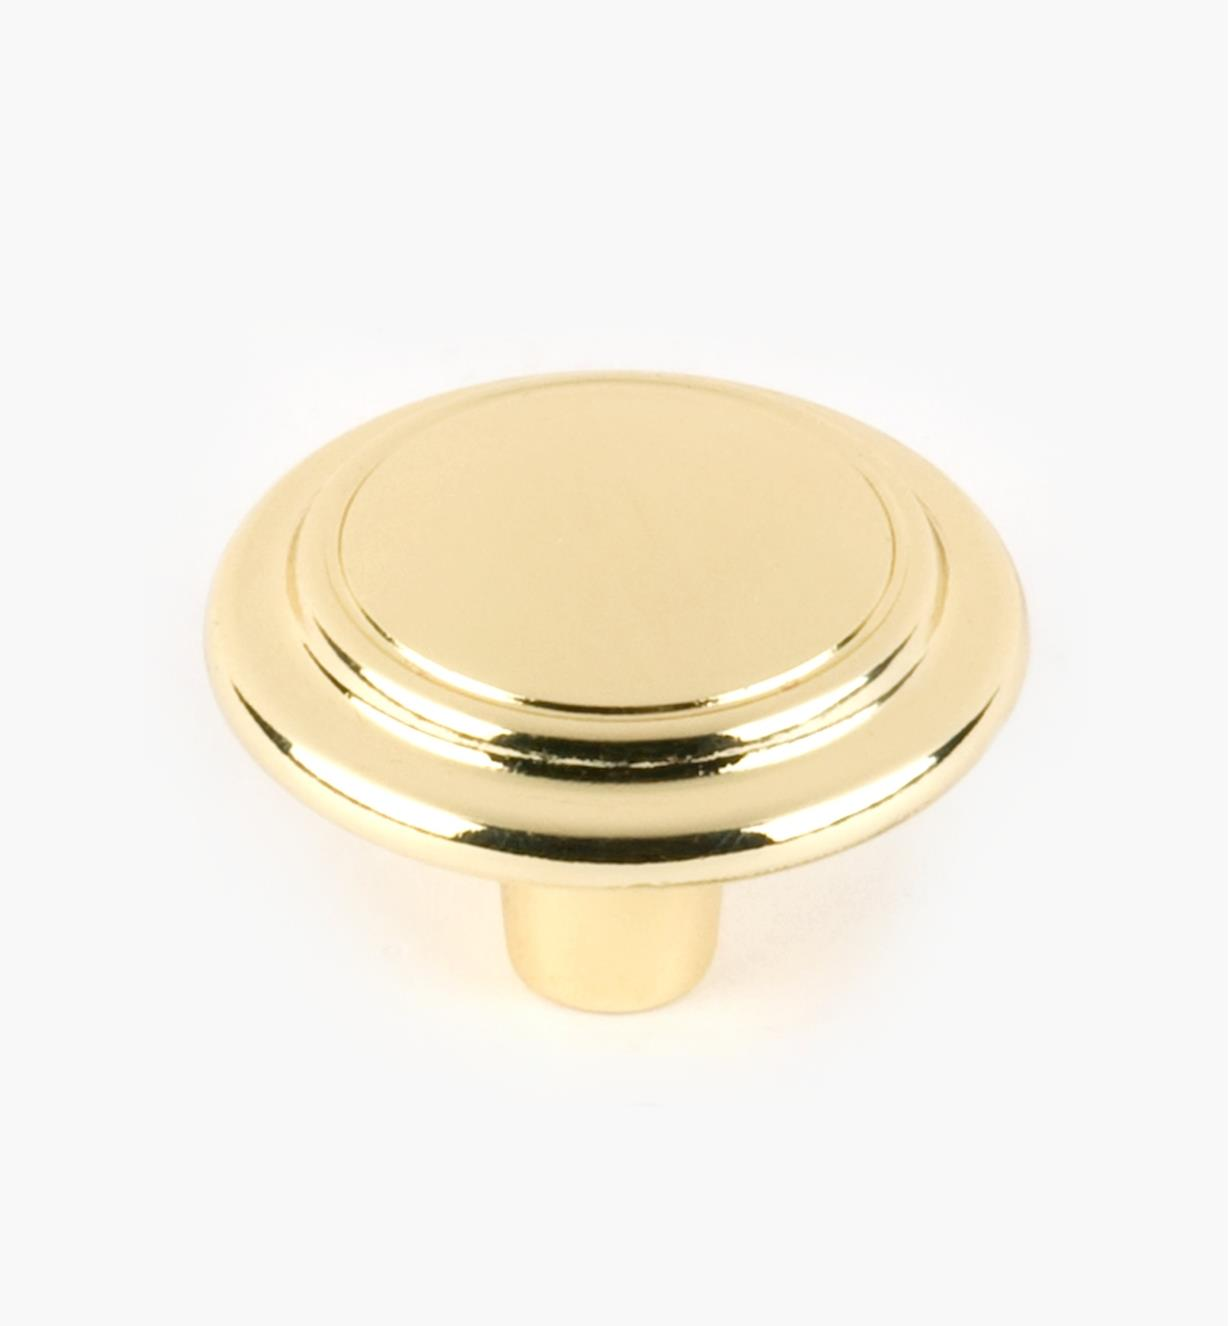 "03W1940 - 1 1/4"" × 7/8"" Brass Plate Accent Knob, each"